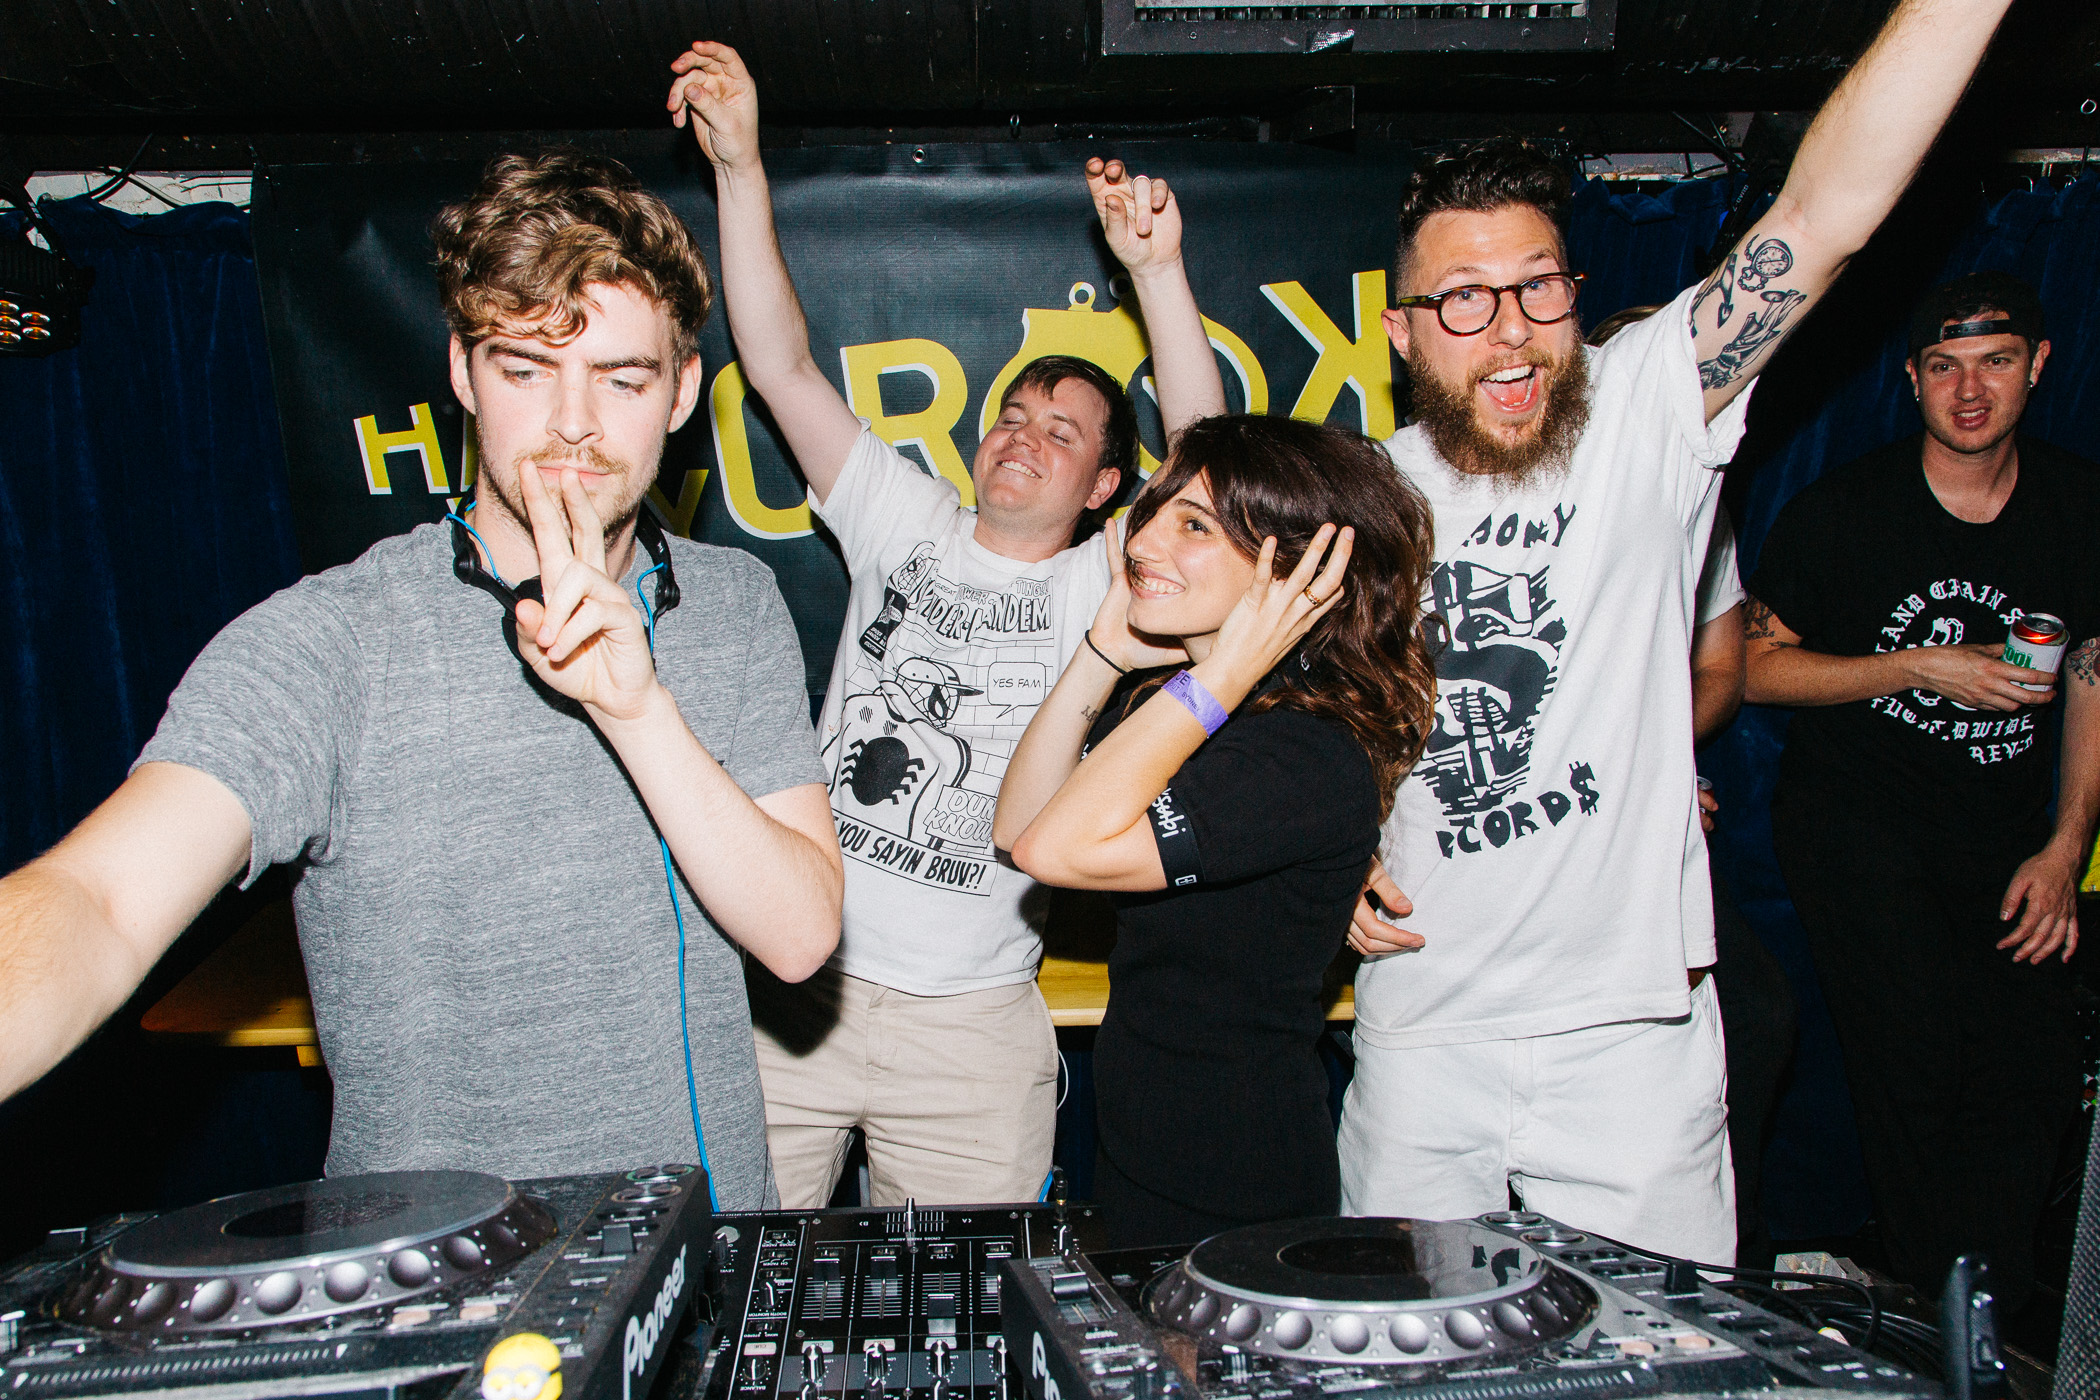 04.10.2015  Crooks last night at Good God, with ~~~secret guests~~~ Ryan Hemsworth & Nina Las Vegas.